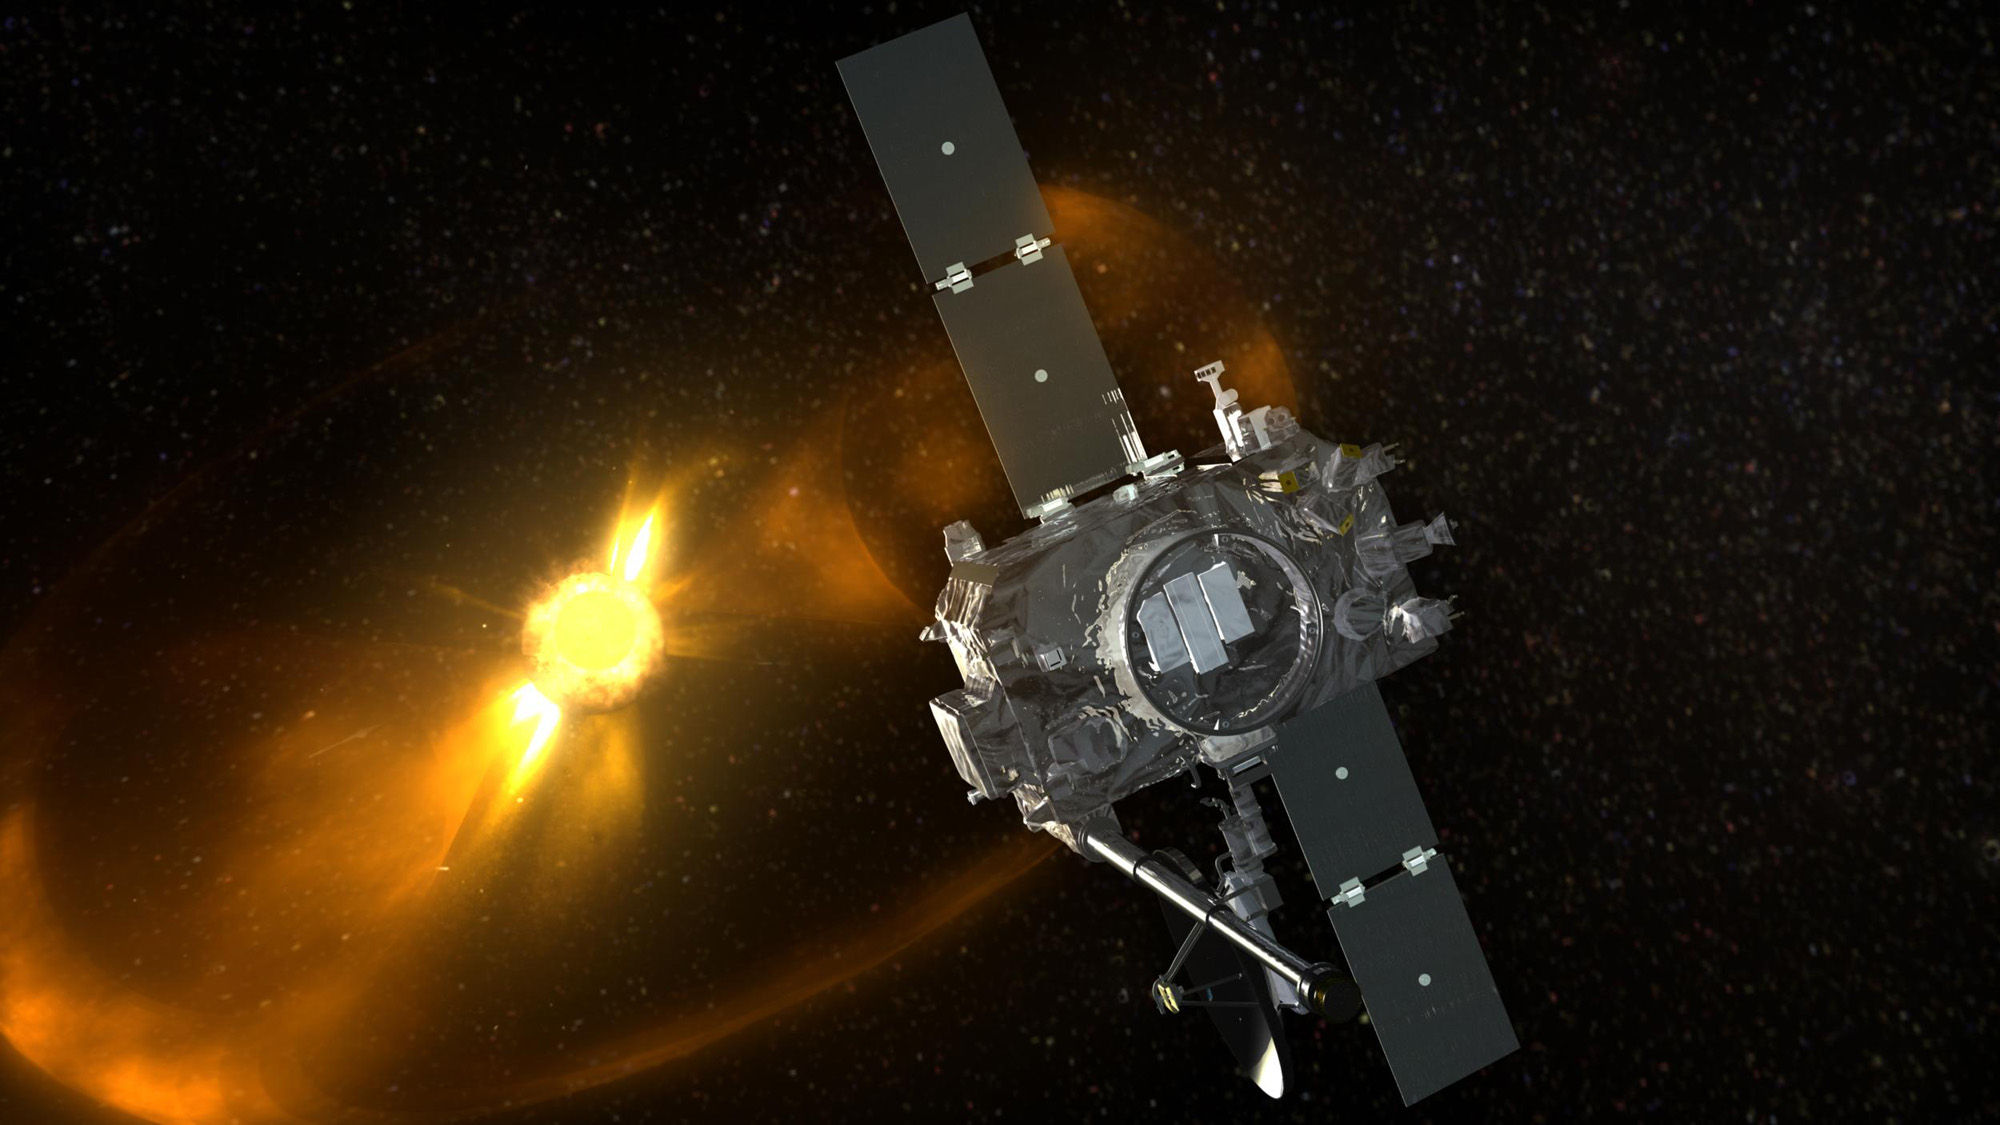 Image: NASA now allowing scientists to use nuclear power sources for future space missions